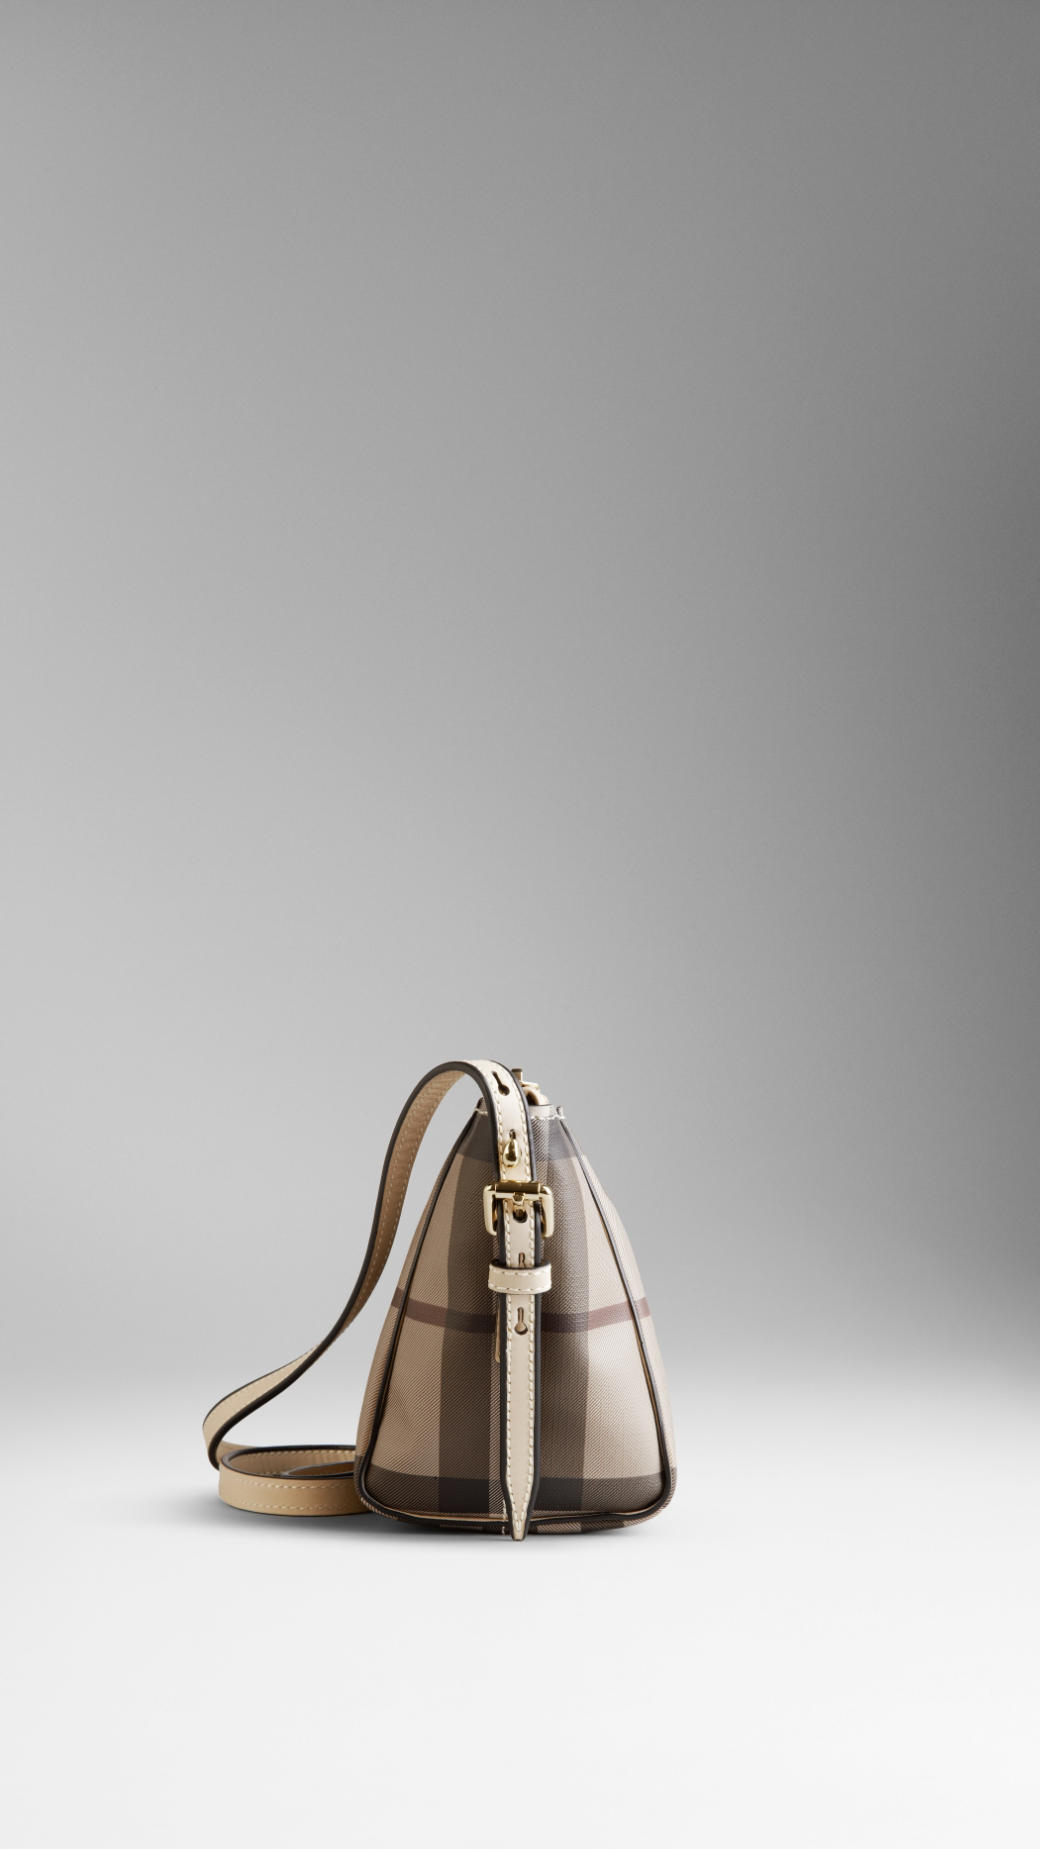 8164e292f49c Lyst - Burberry Small Smoked Check Saddle Stitch Crossbody Bag in ...